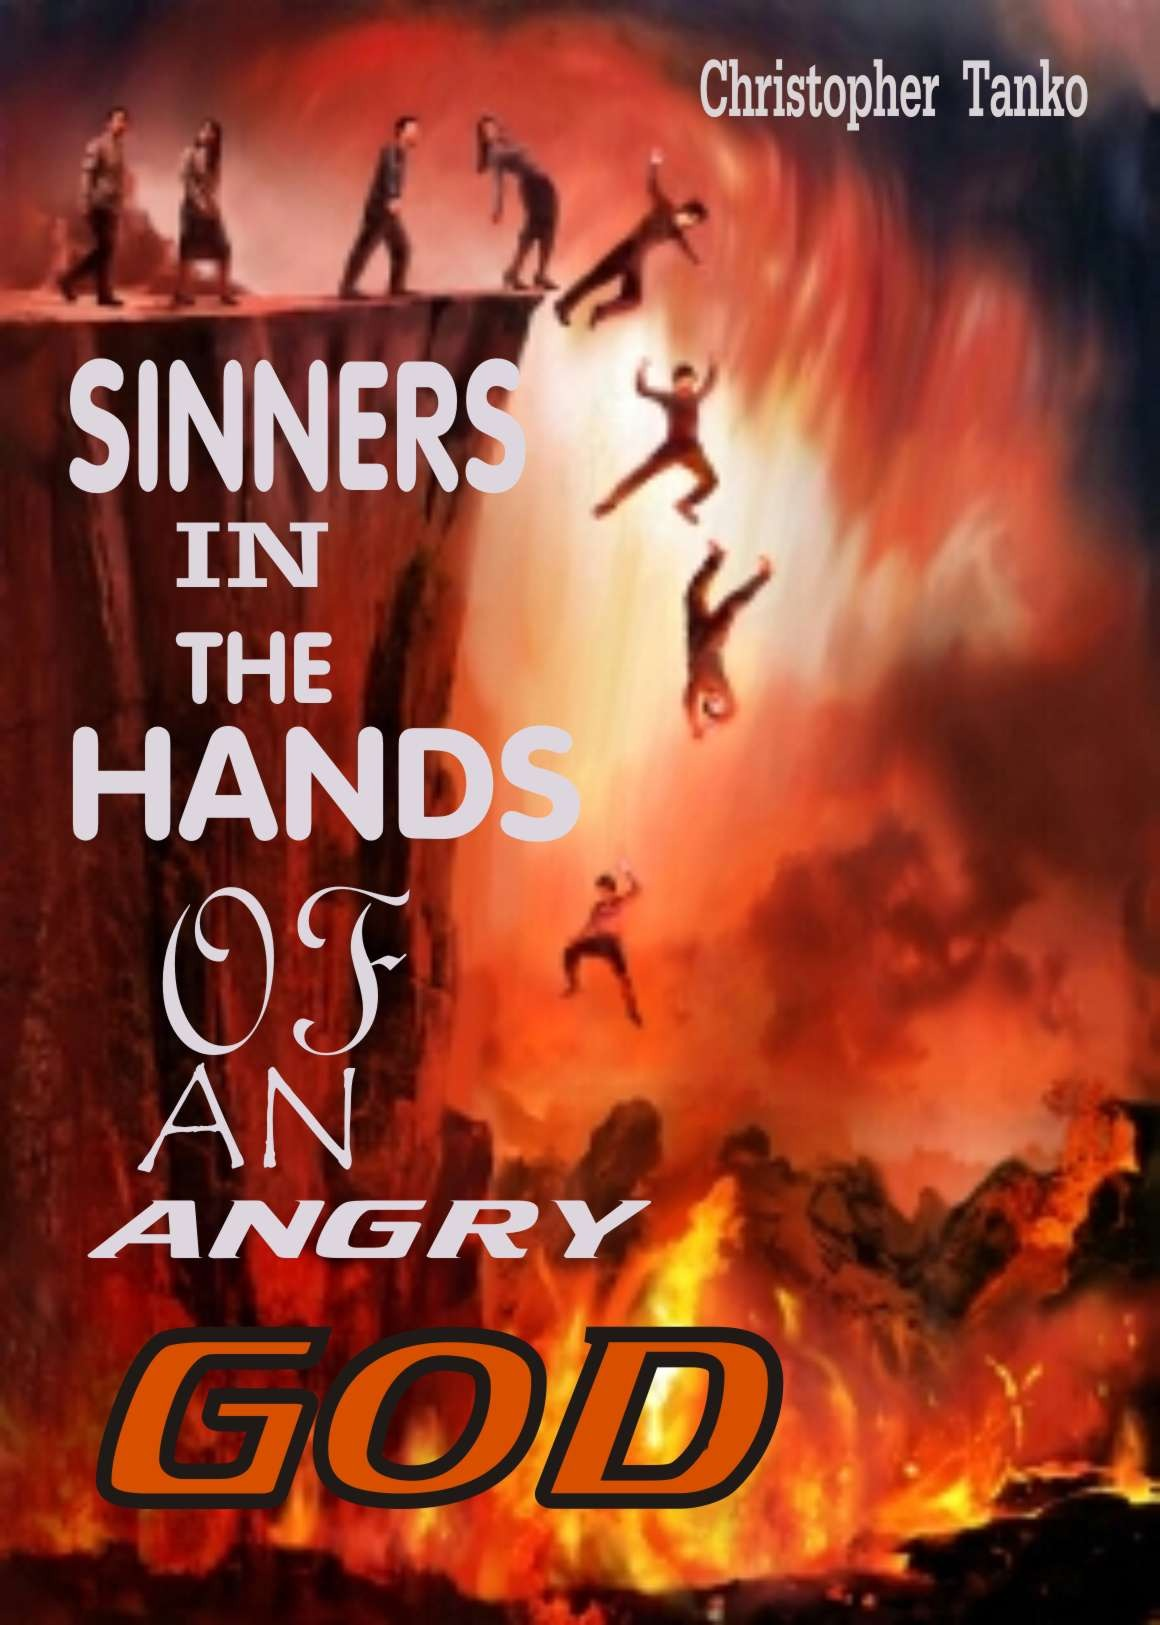 SINNERS IN THE HANDS OF AN ANGRY